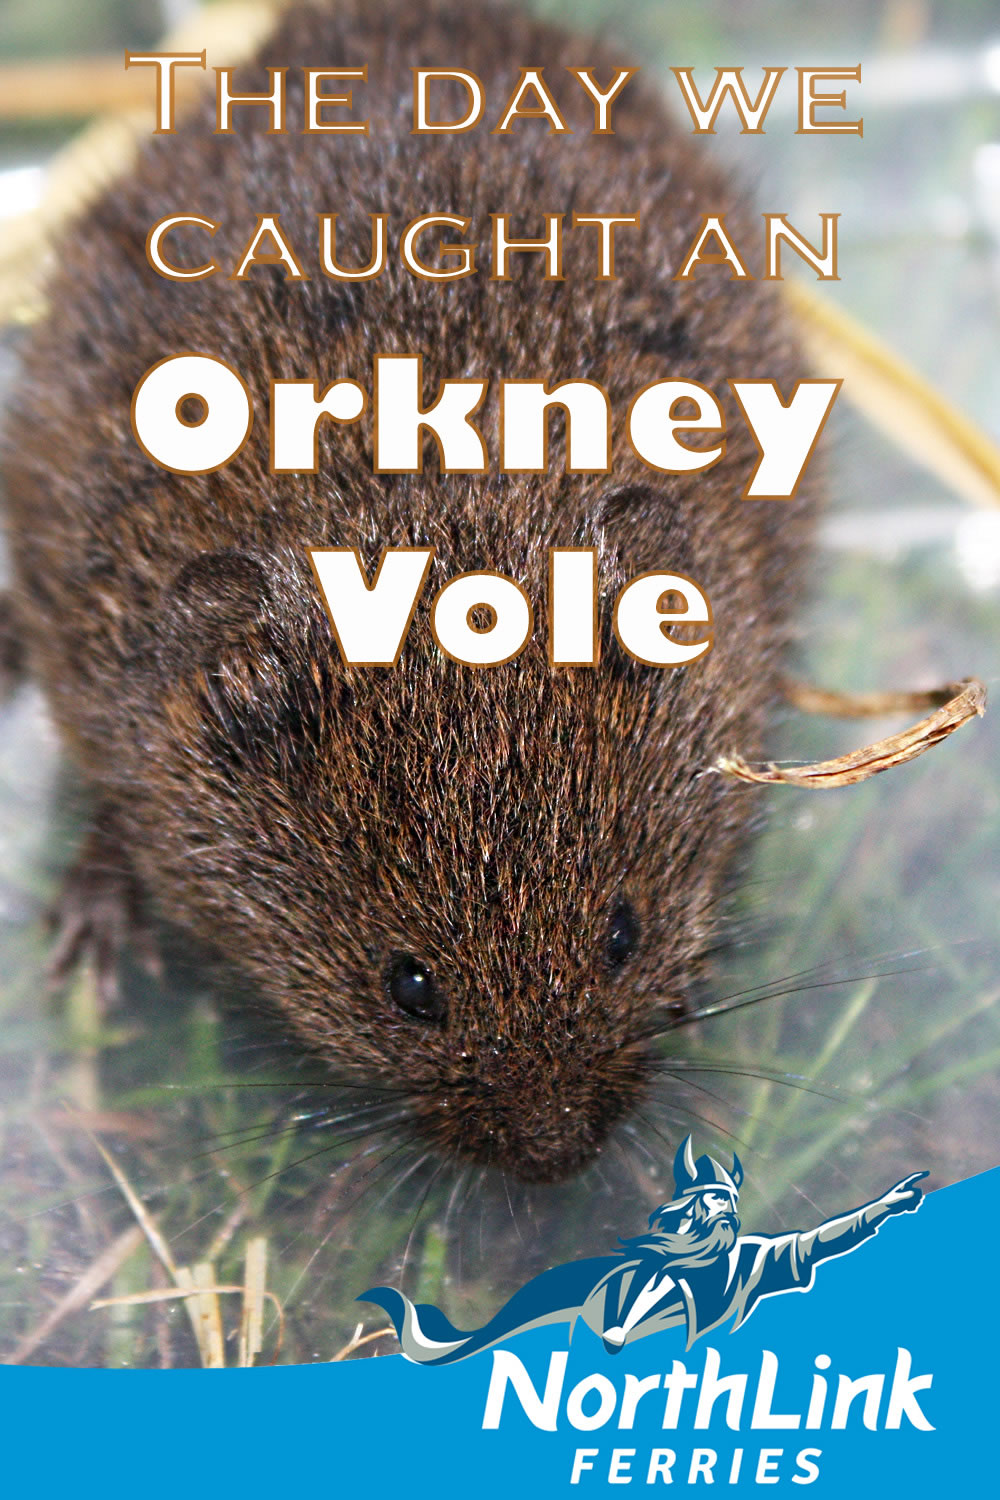 The day we caught an Orkney Vole